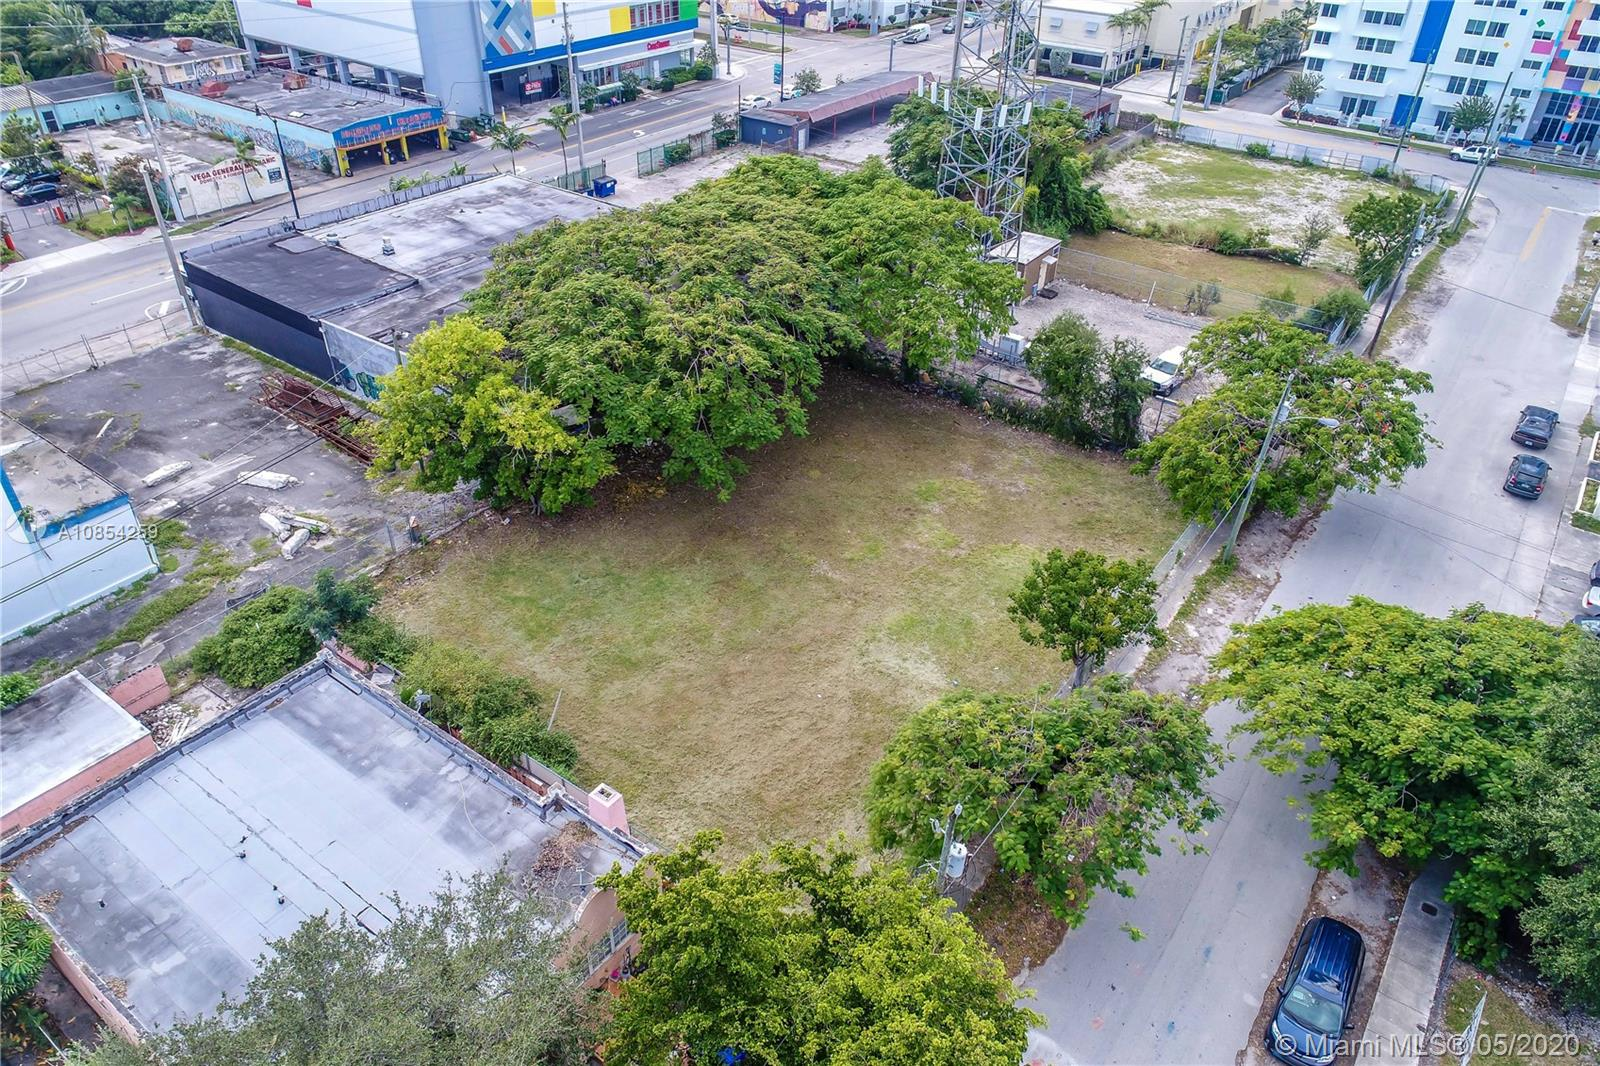 344 & 356 NW 37th St, Miami, Florida 33127, ,Land/boat Docks,For Sale,344 & 356 NW 37th St,A10854259